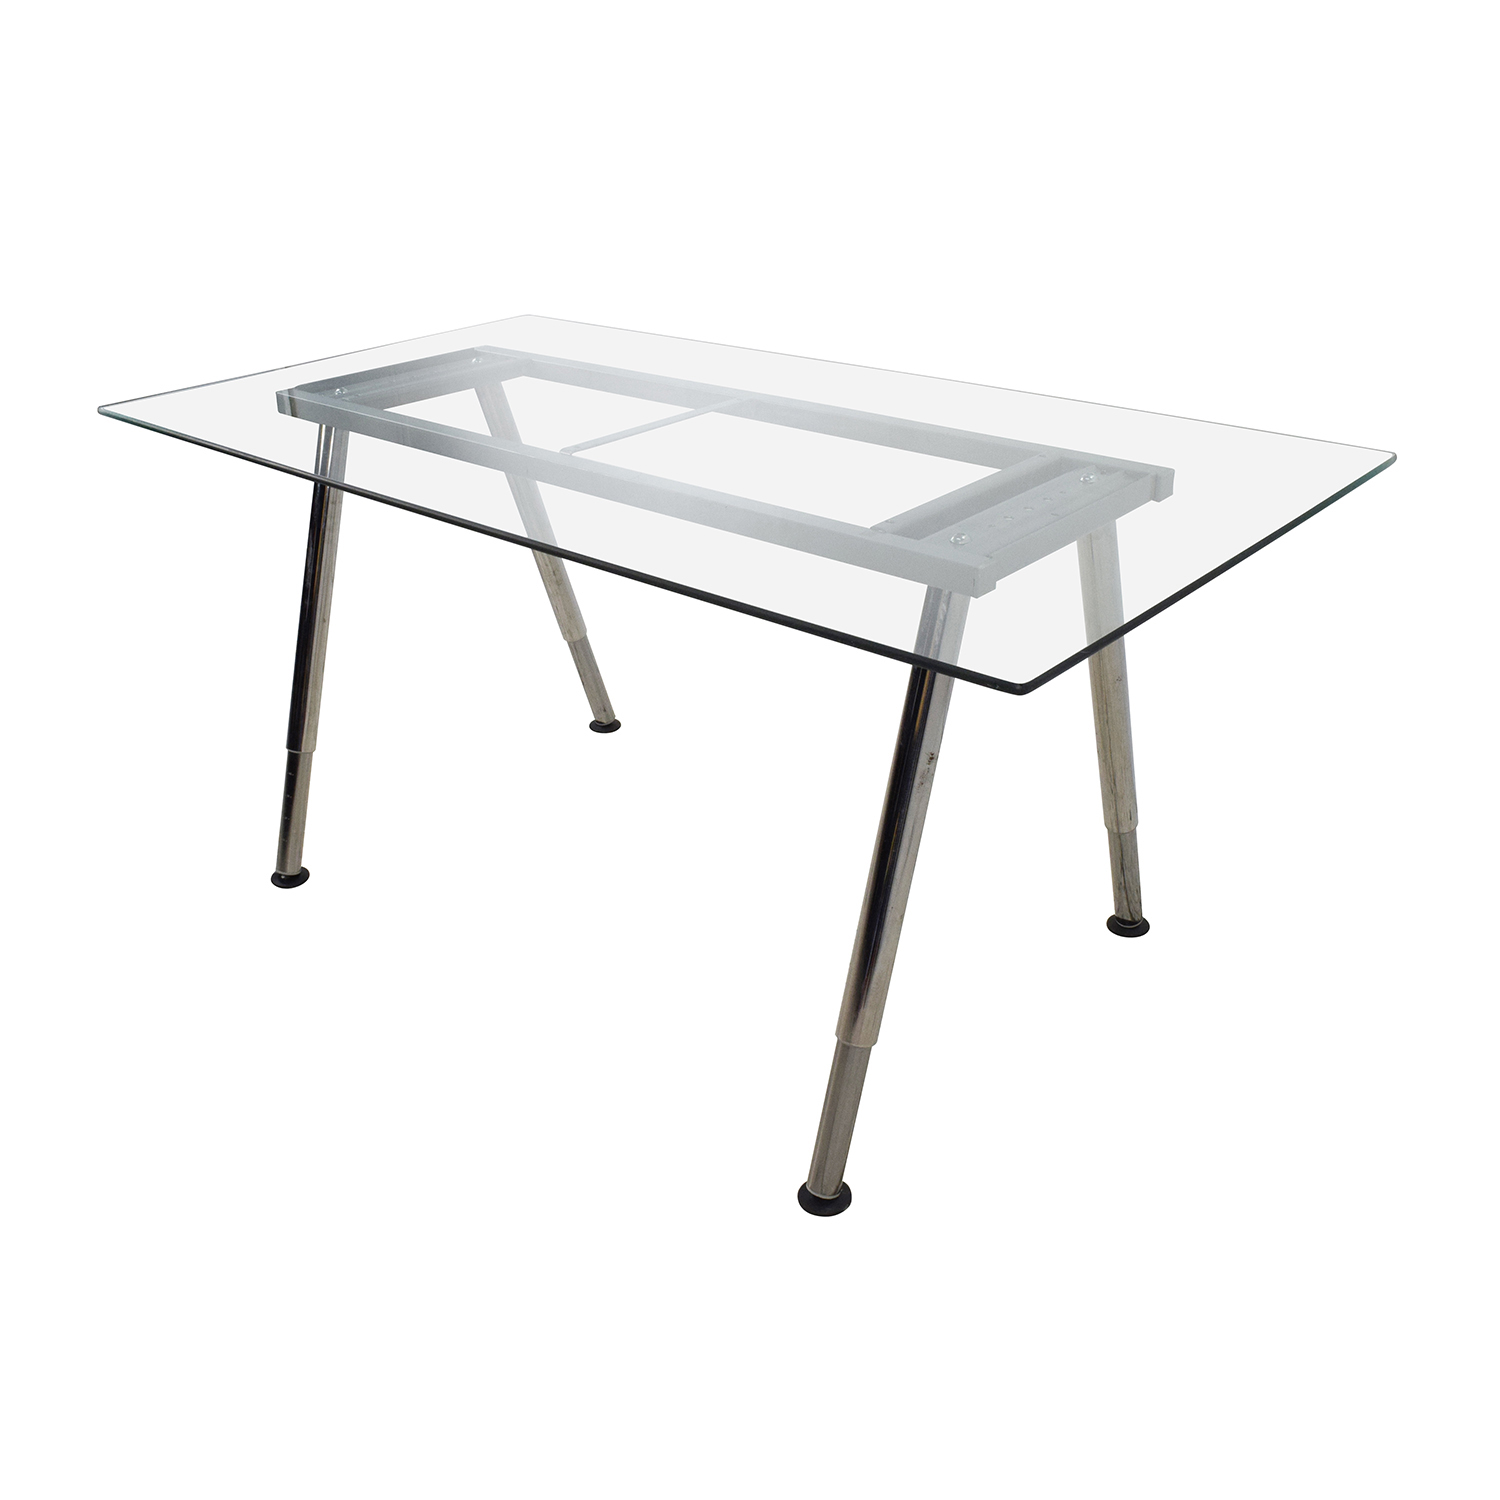 52 off glass top trestle table with metal base tables for Table 52 images